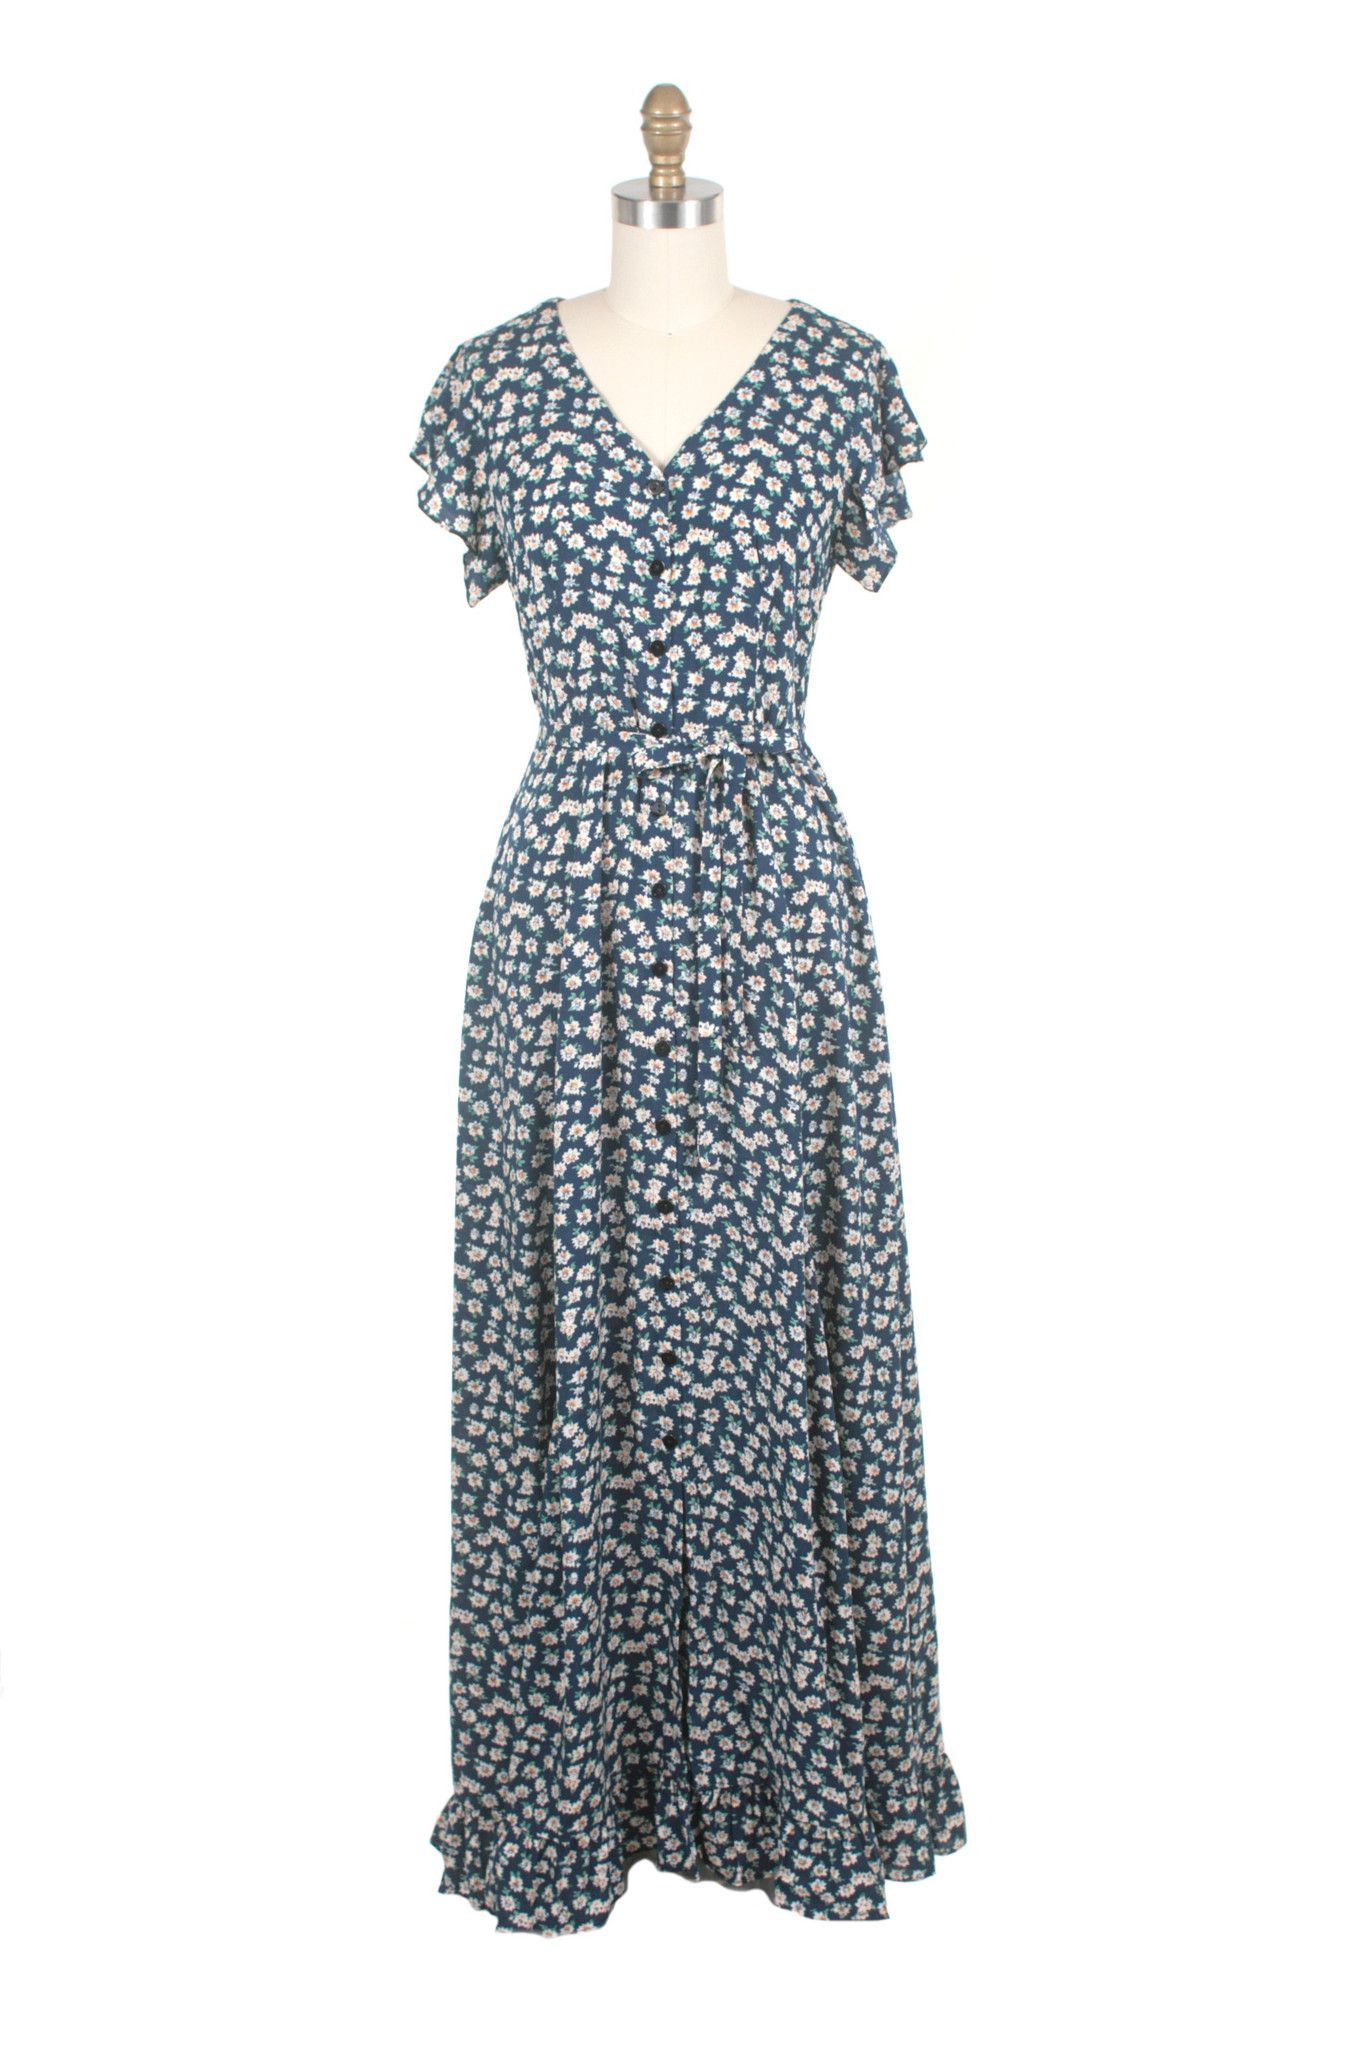 Blue rayon print with white flowers maxi button down dress with blue rayon print with white flowers maxi button down dress with ruffle sleeves and a wide ruffle hem inseam side pockets unlined rayon imported izmirmasajfo